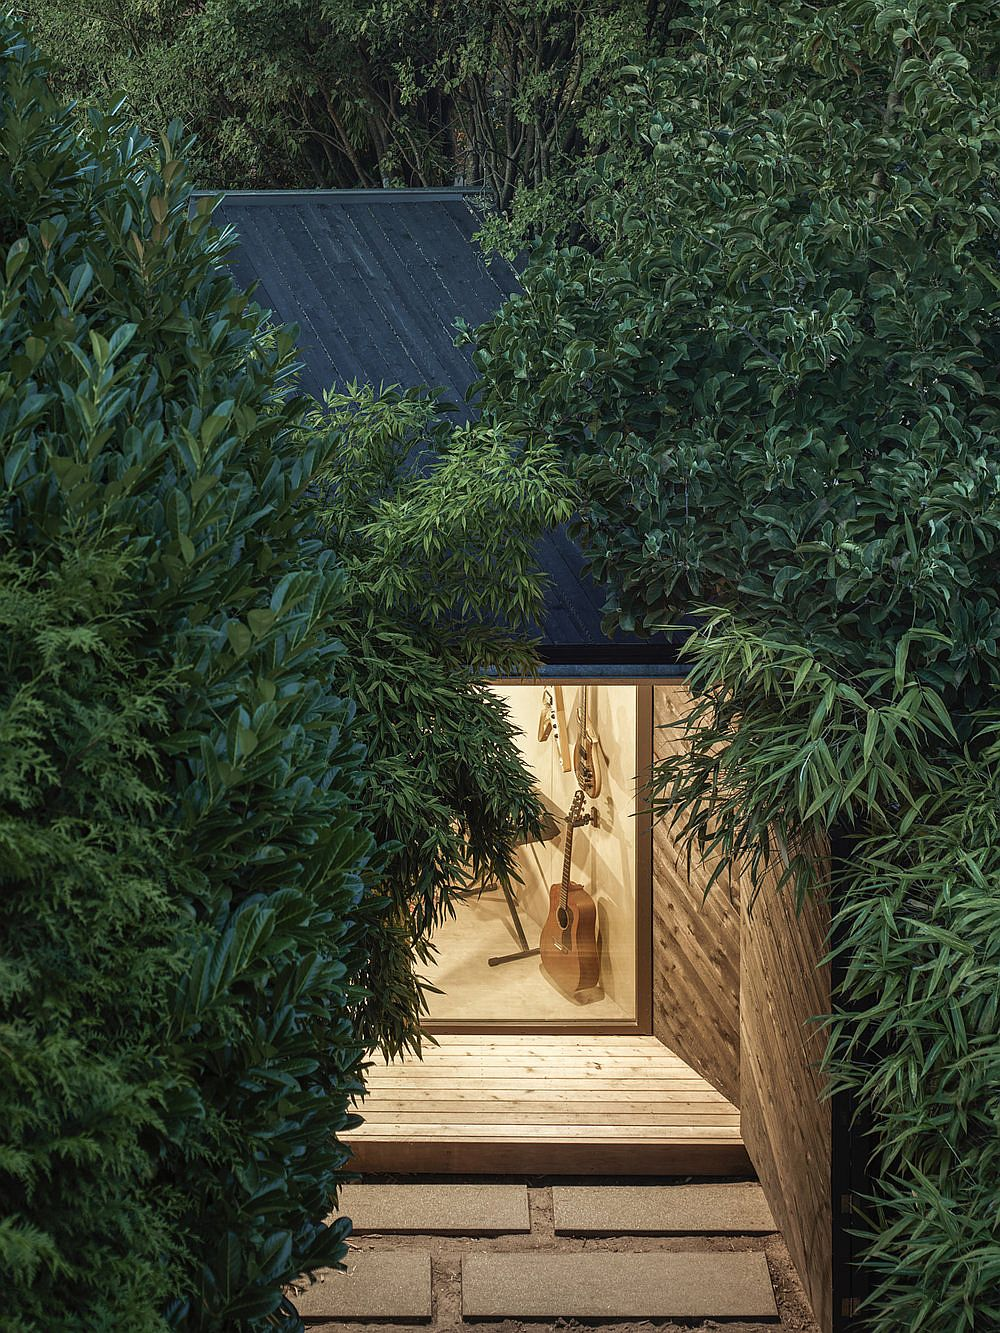 Garden-and-greenery-around-the-backyard-shed-offer-natural-cover-to-it-31966